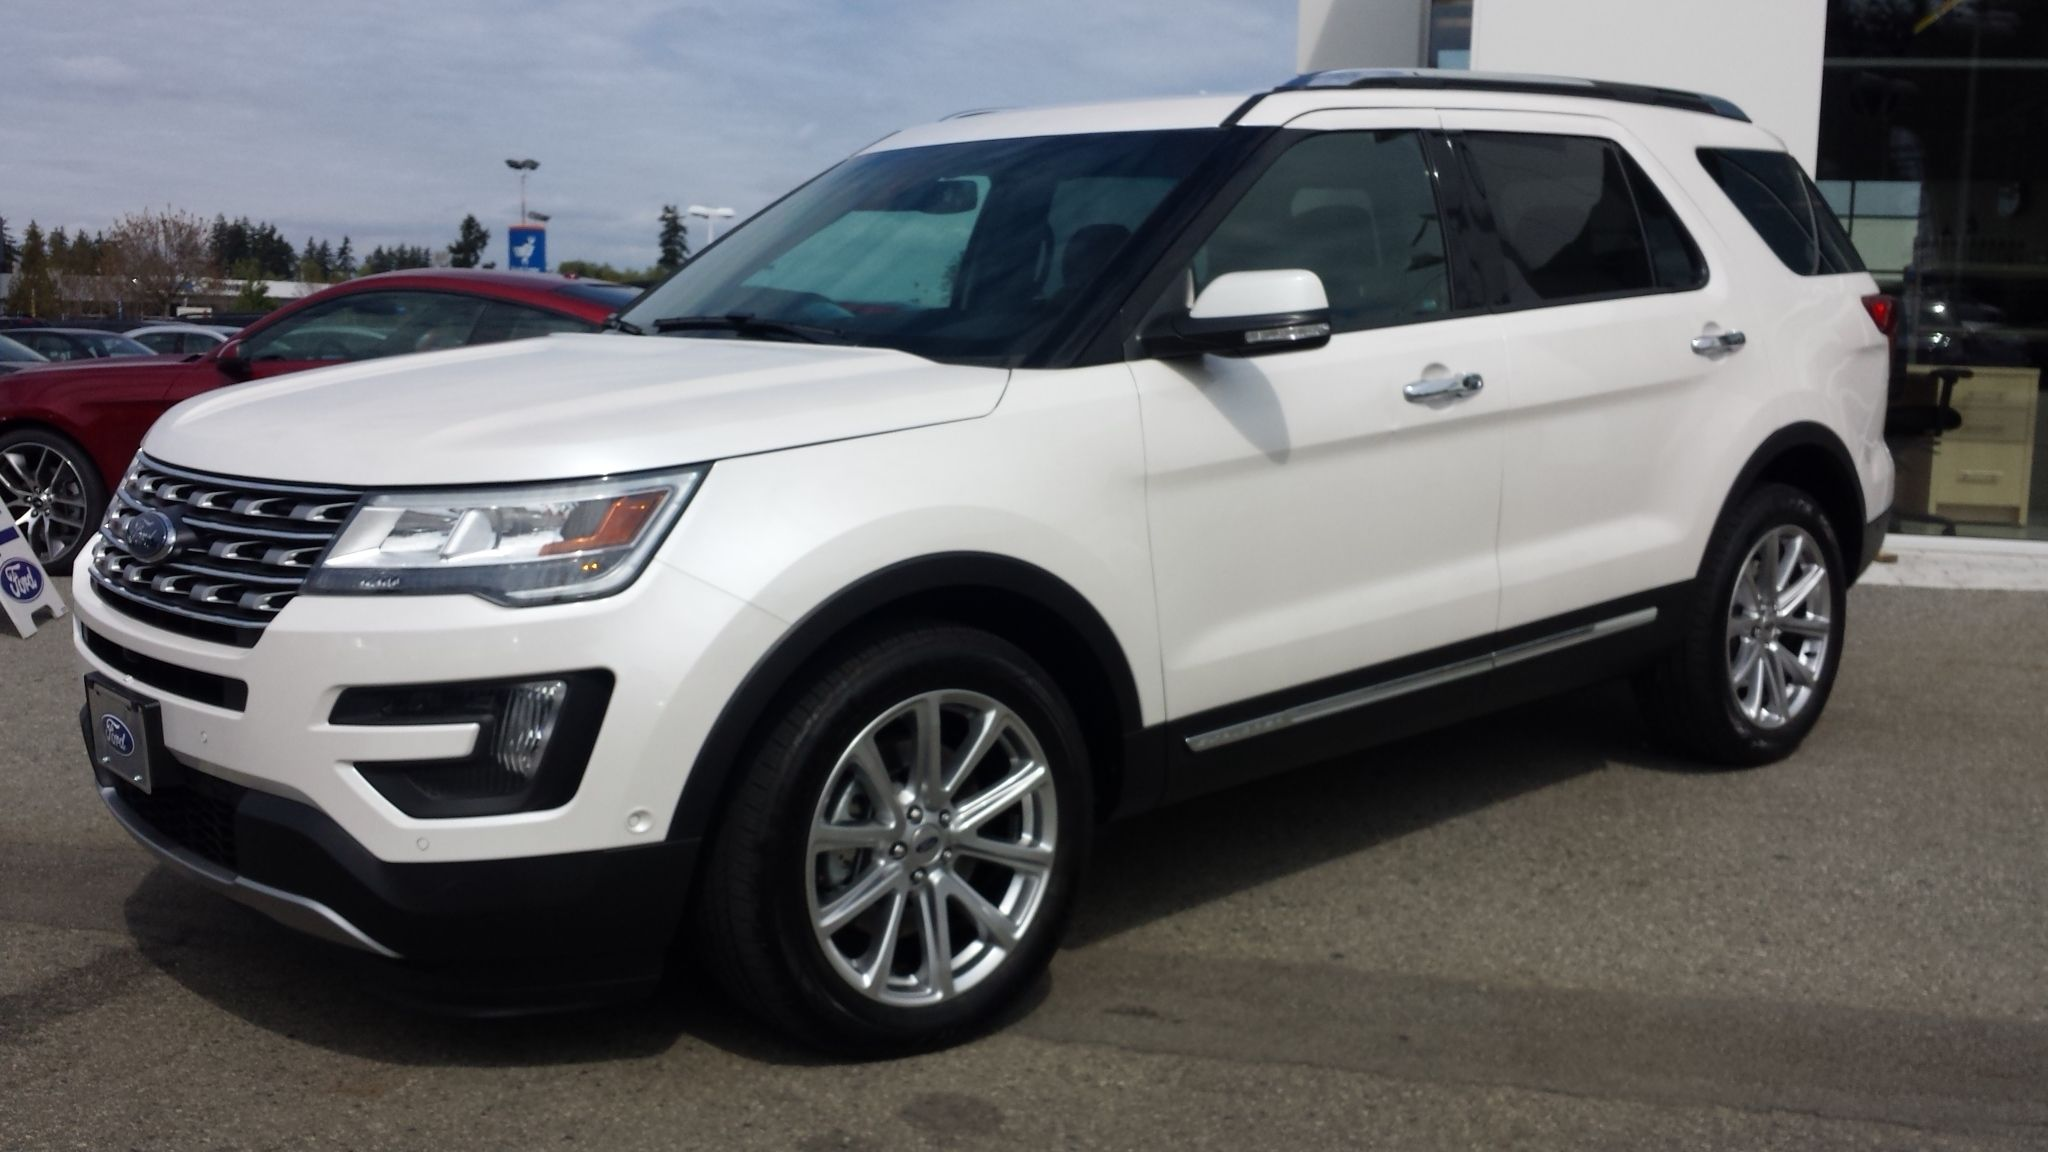 New Refreshed 2016 Ford Explorer Limited At Ocean Park Ford For Training Expected Arrival In July But Pre O Ford Explorer Ford Explorer Limited Ford